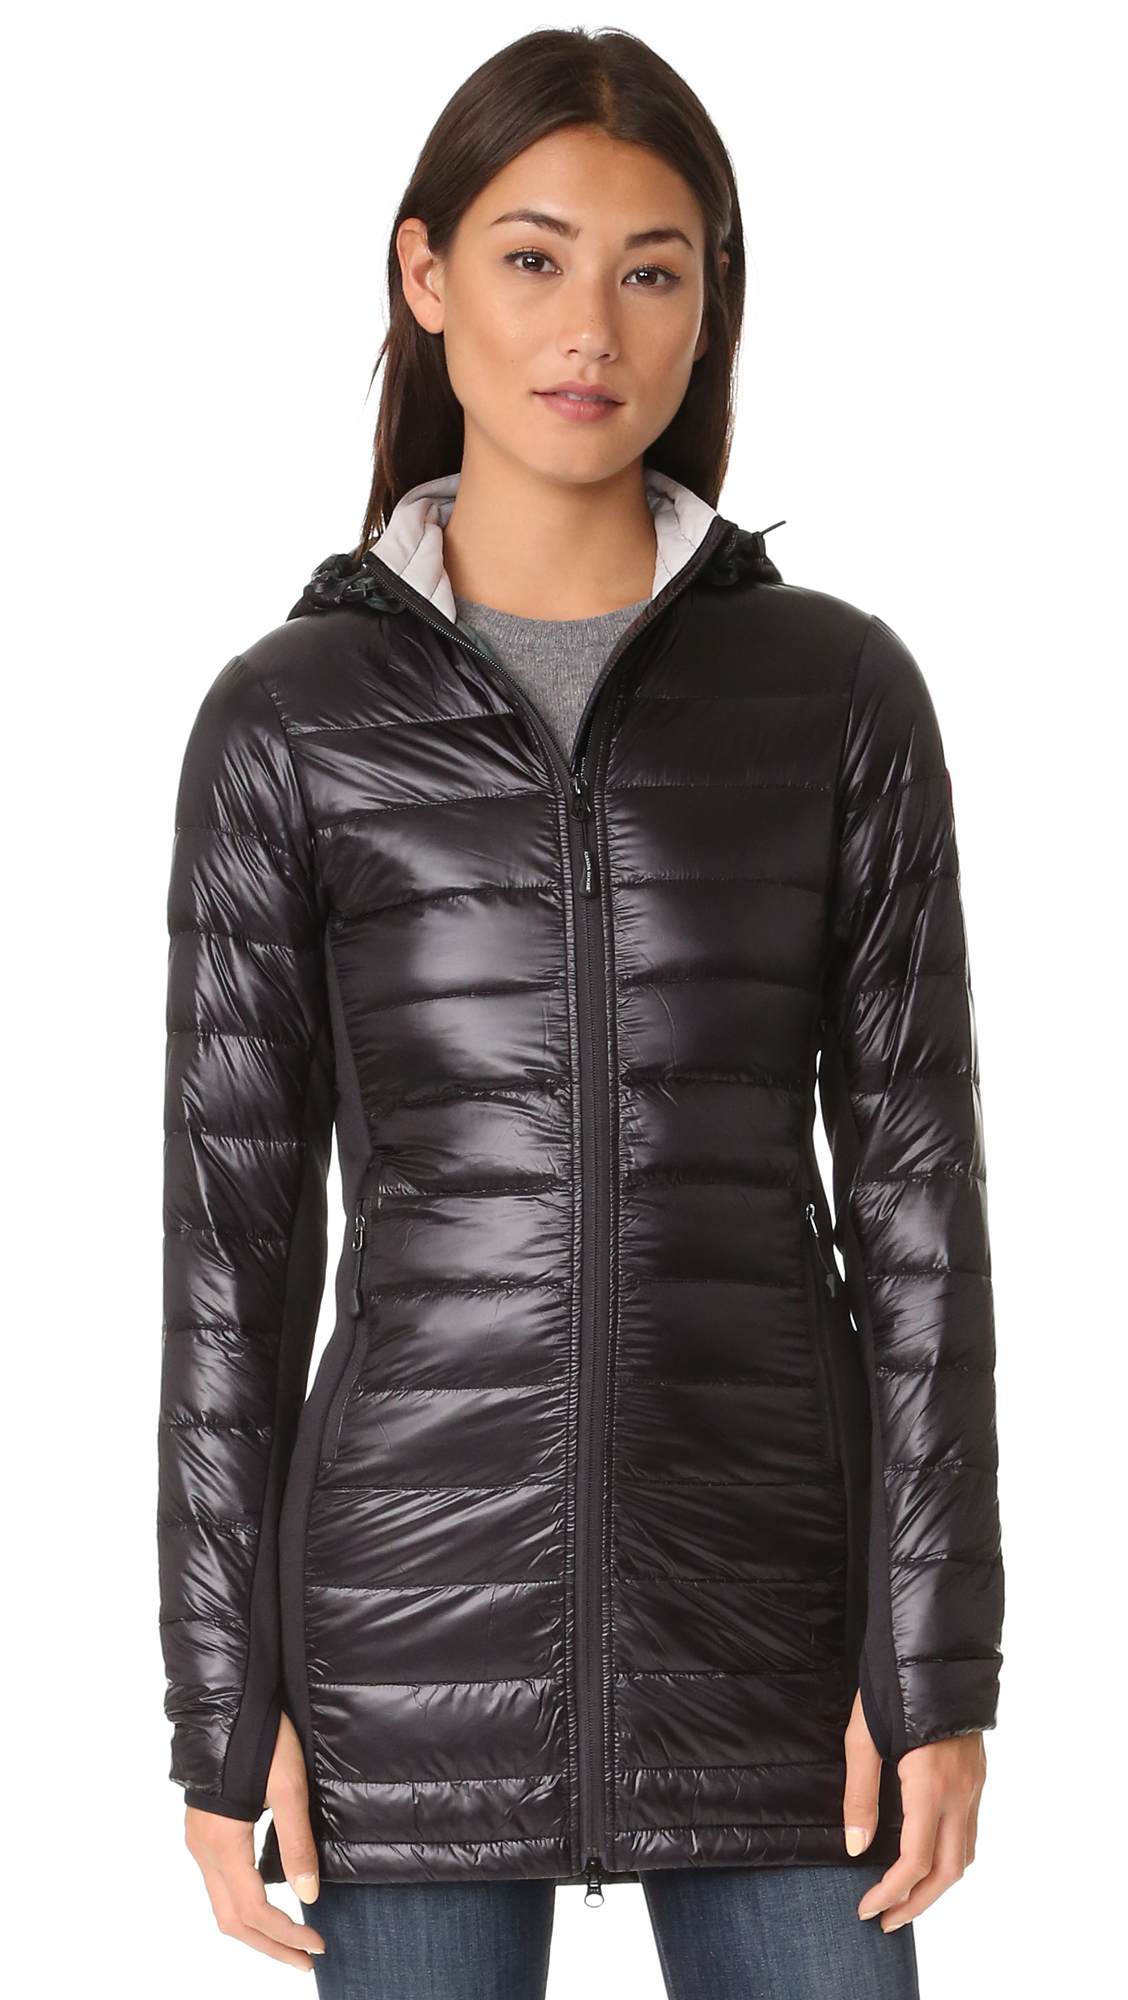 Buy Canada Goose Hybridge Lite Long Coat online beautiful Canada Goose Jackets, Coats, Down Jackets